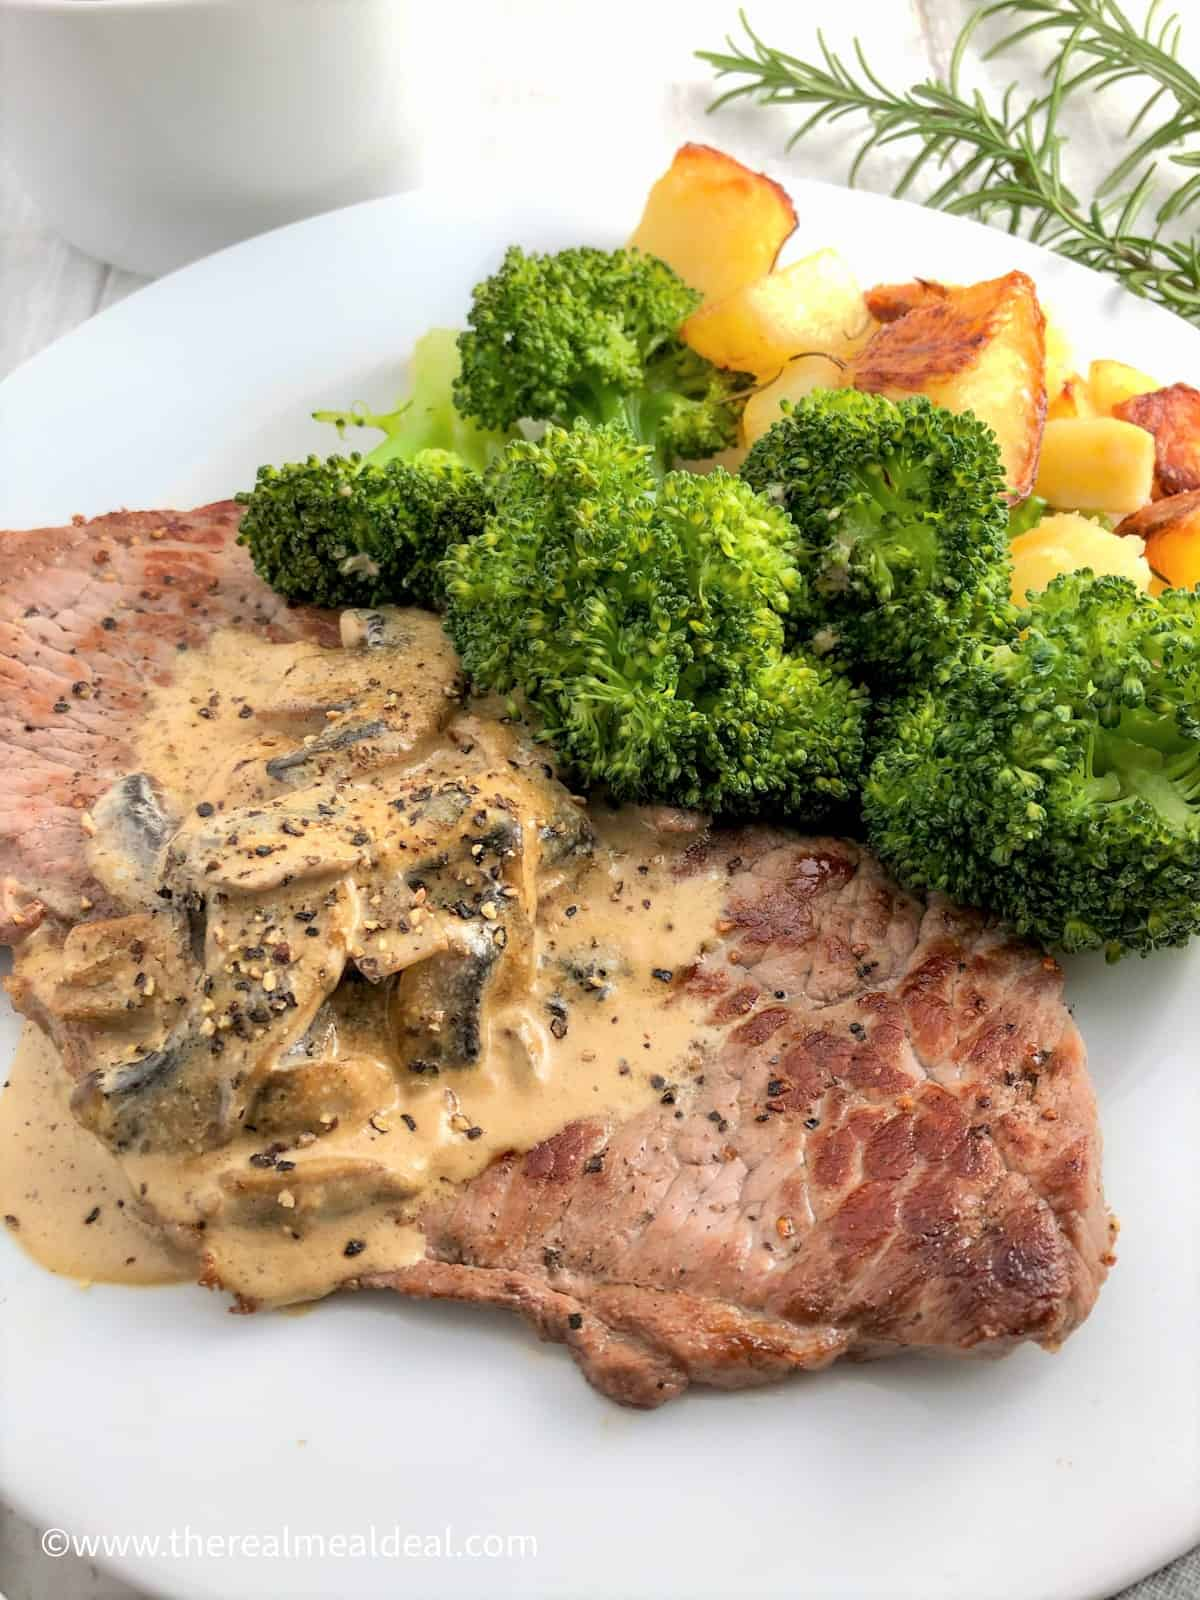 rose veal escalopes on plate with mushroom sauce and broccoli and roasted potatoes